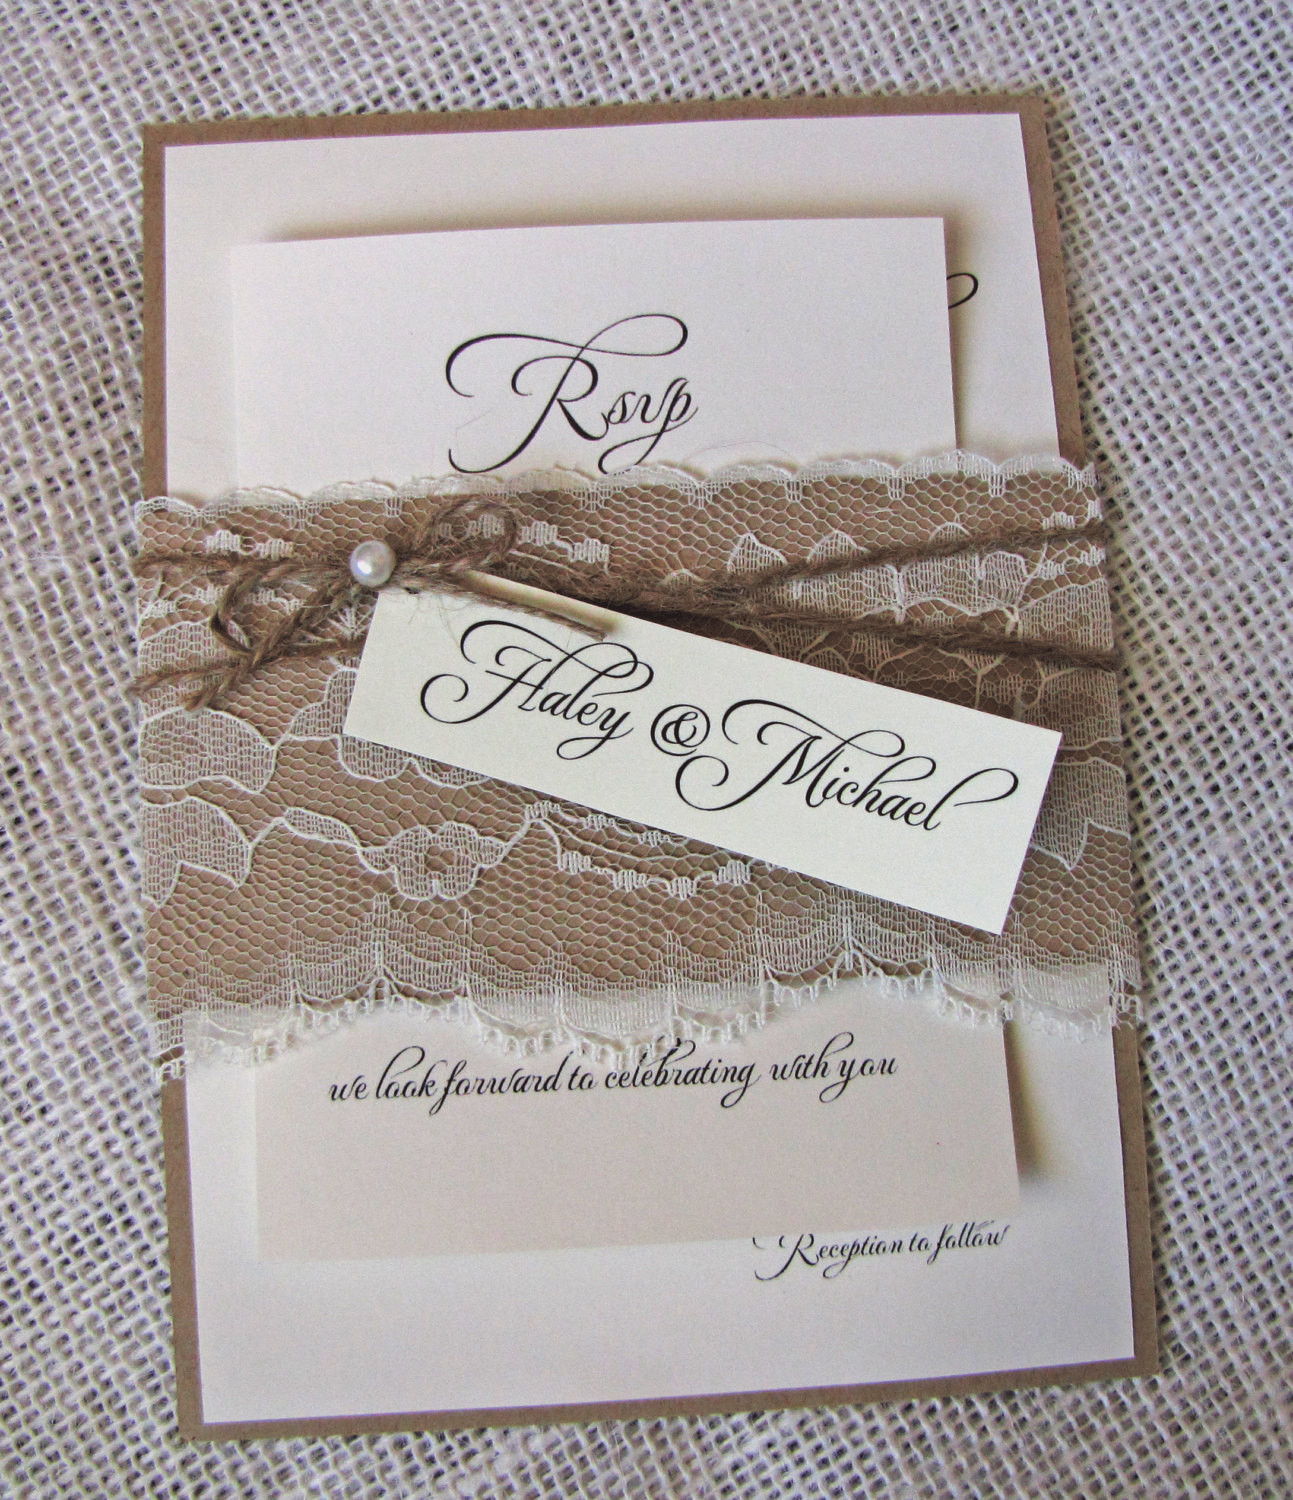 Best ideas about DIY Rustic Wedding Invitations . Save or Pin DIY Rustic Wedding Invitations Lace Wedding Invitation Now.